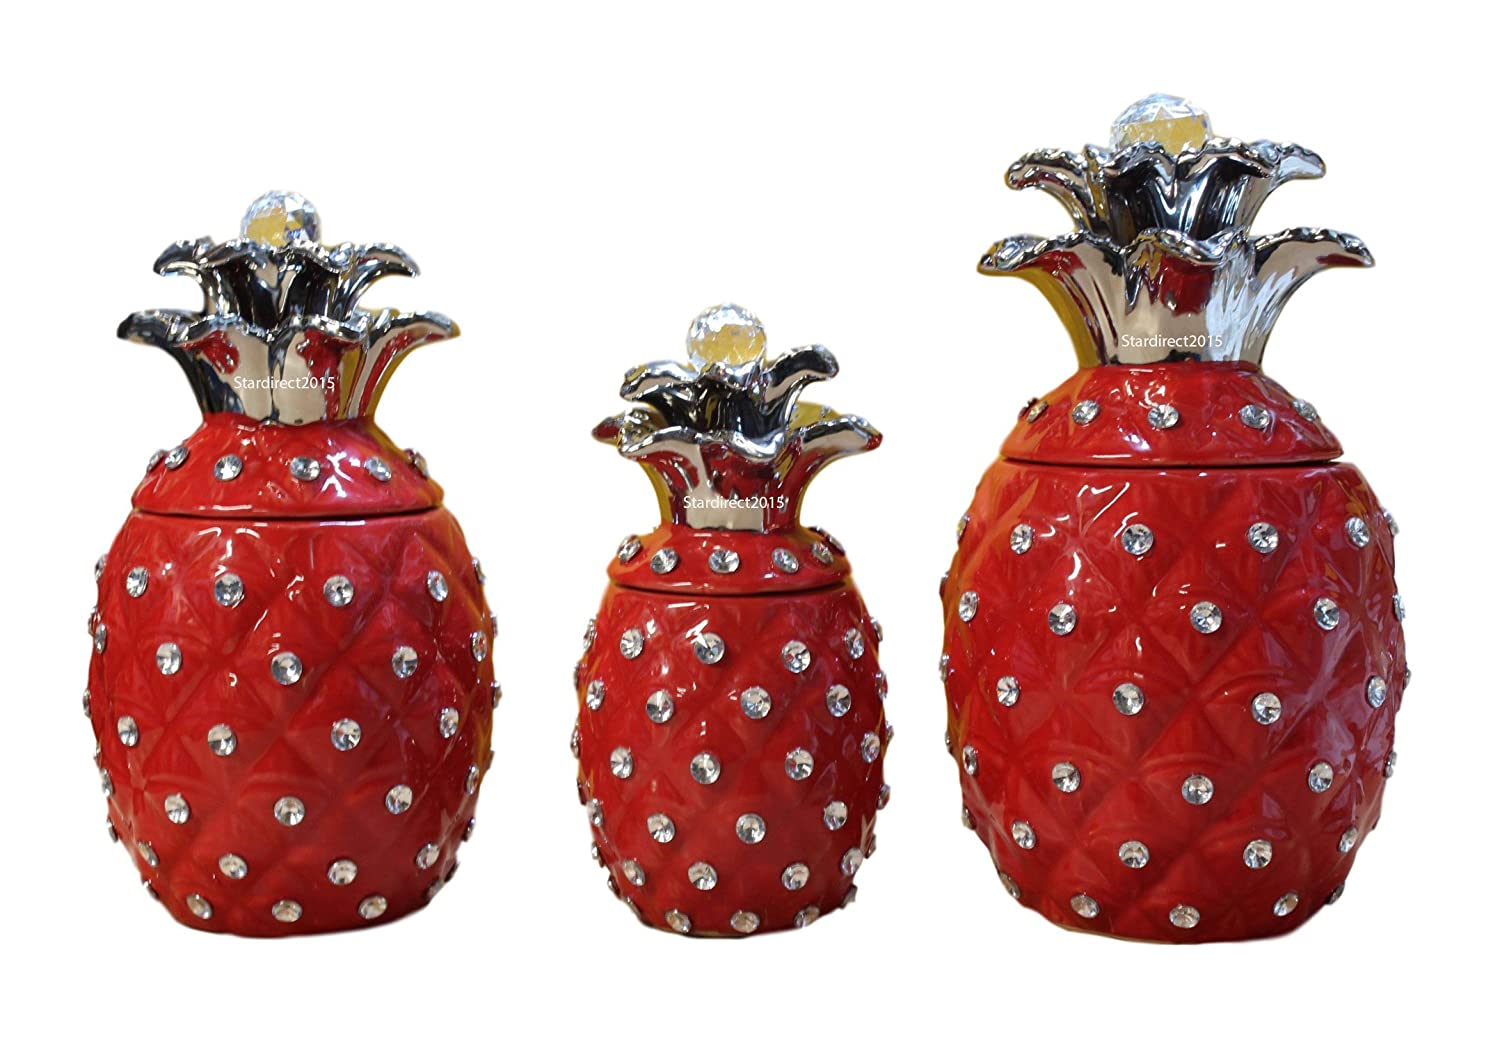 New pineapple tea coffee sugar canister jars ceramic set kitchen storage food white red gold red amazon co uk kitchen home